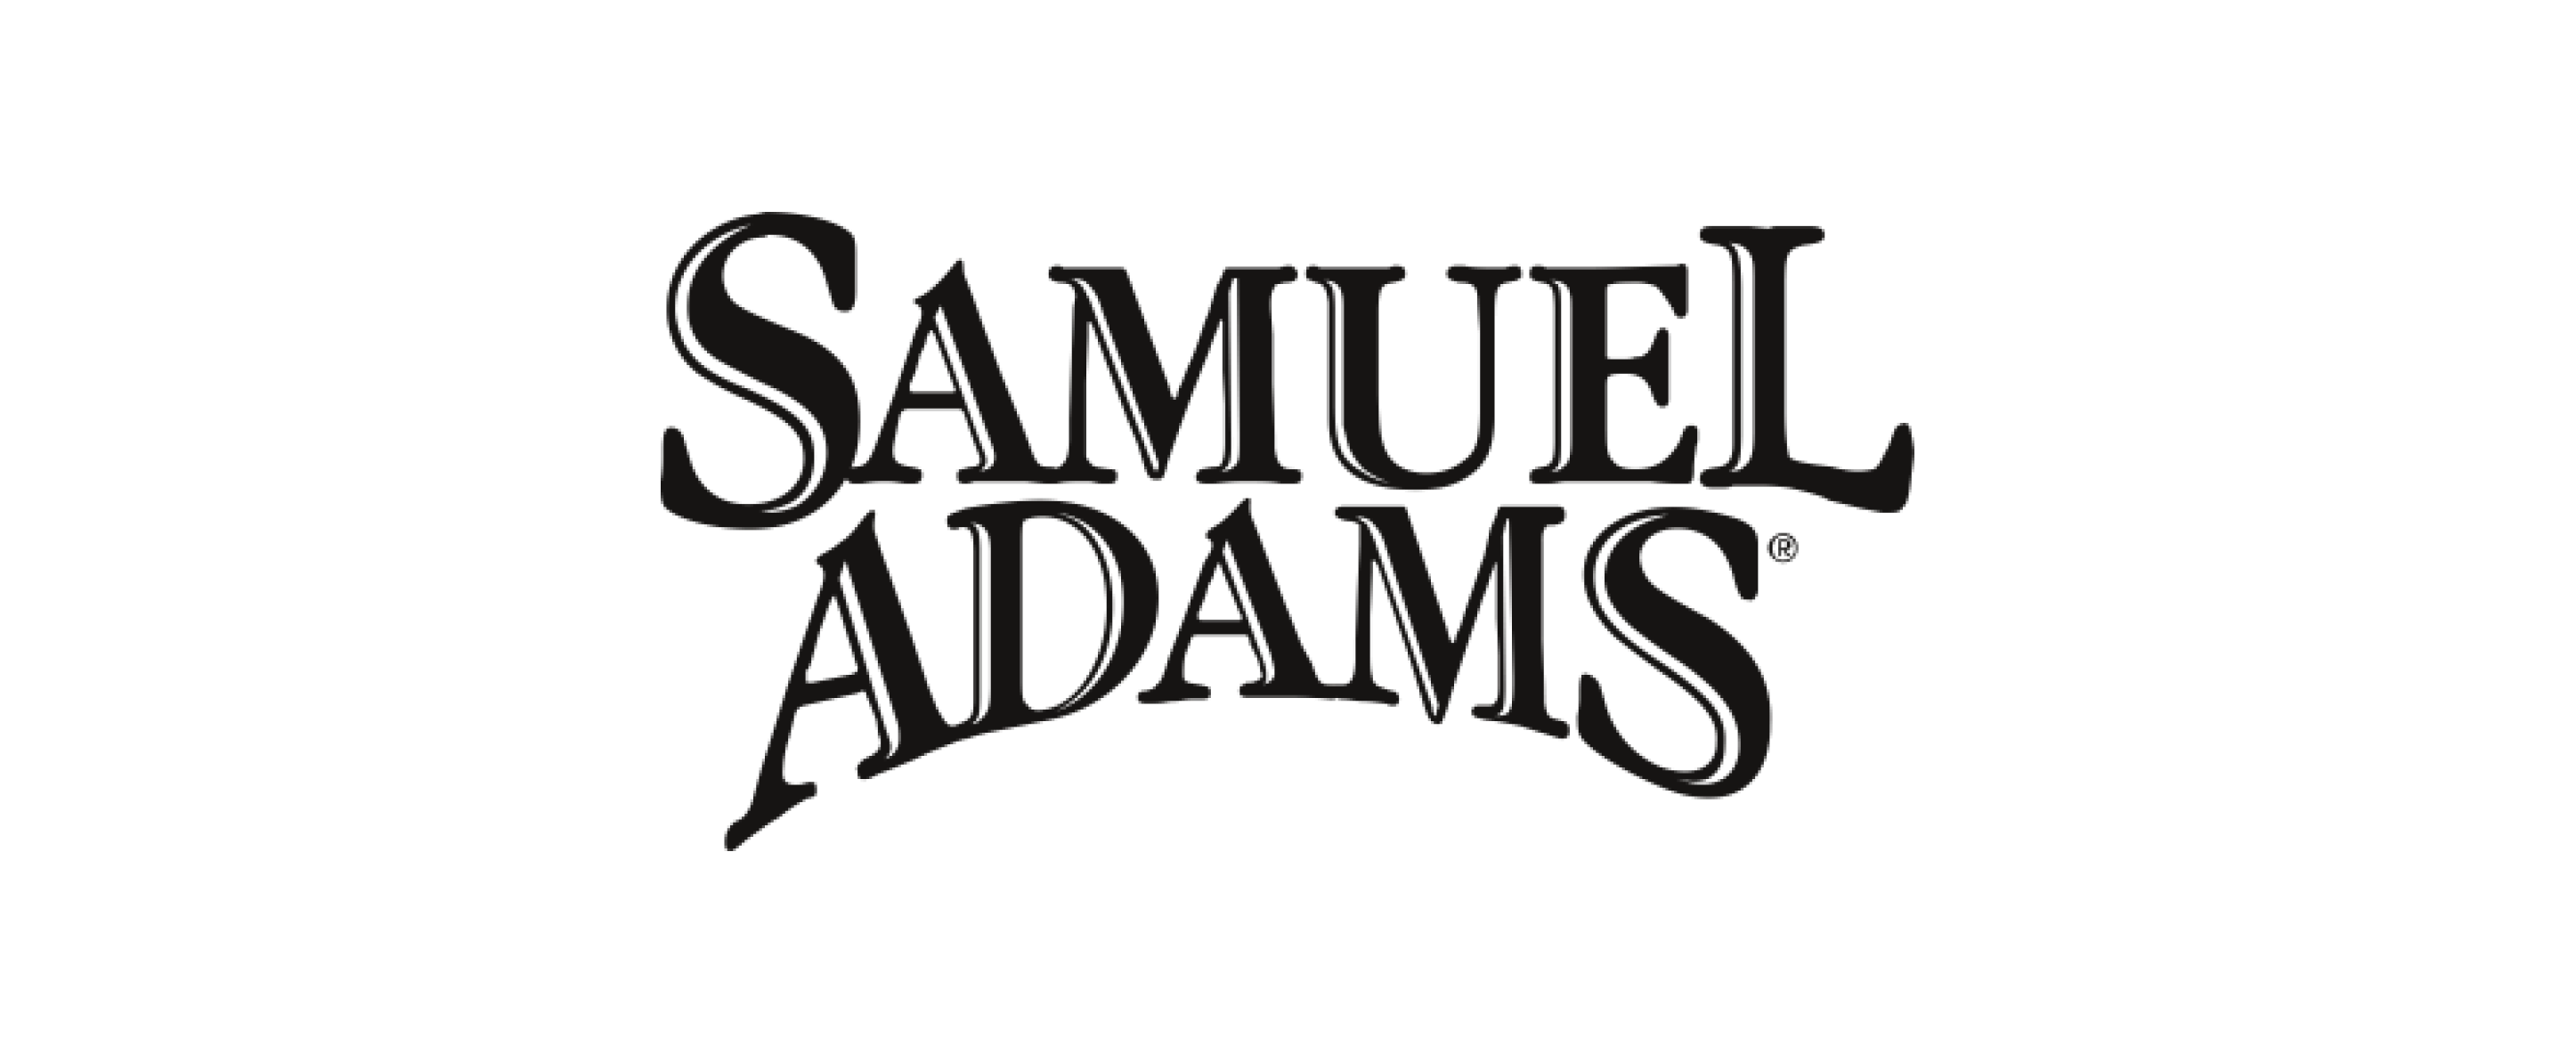 Samuel Adams It's whats inside